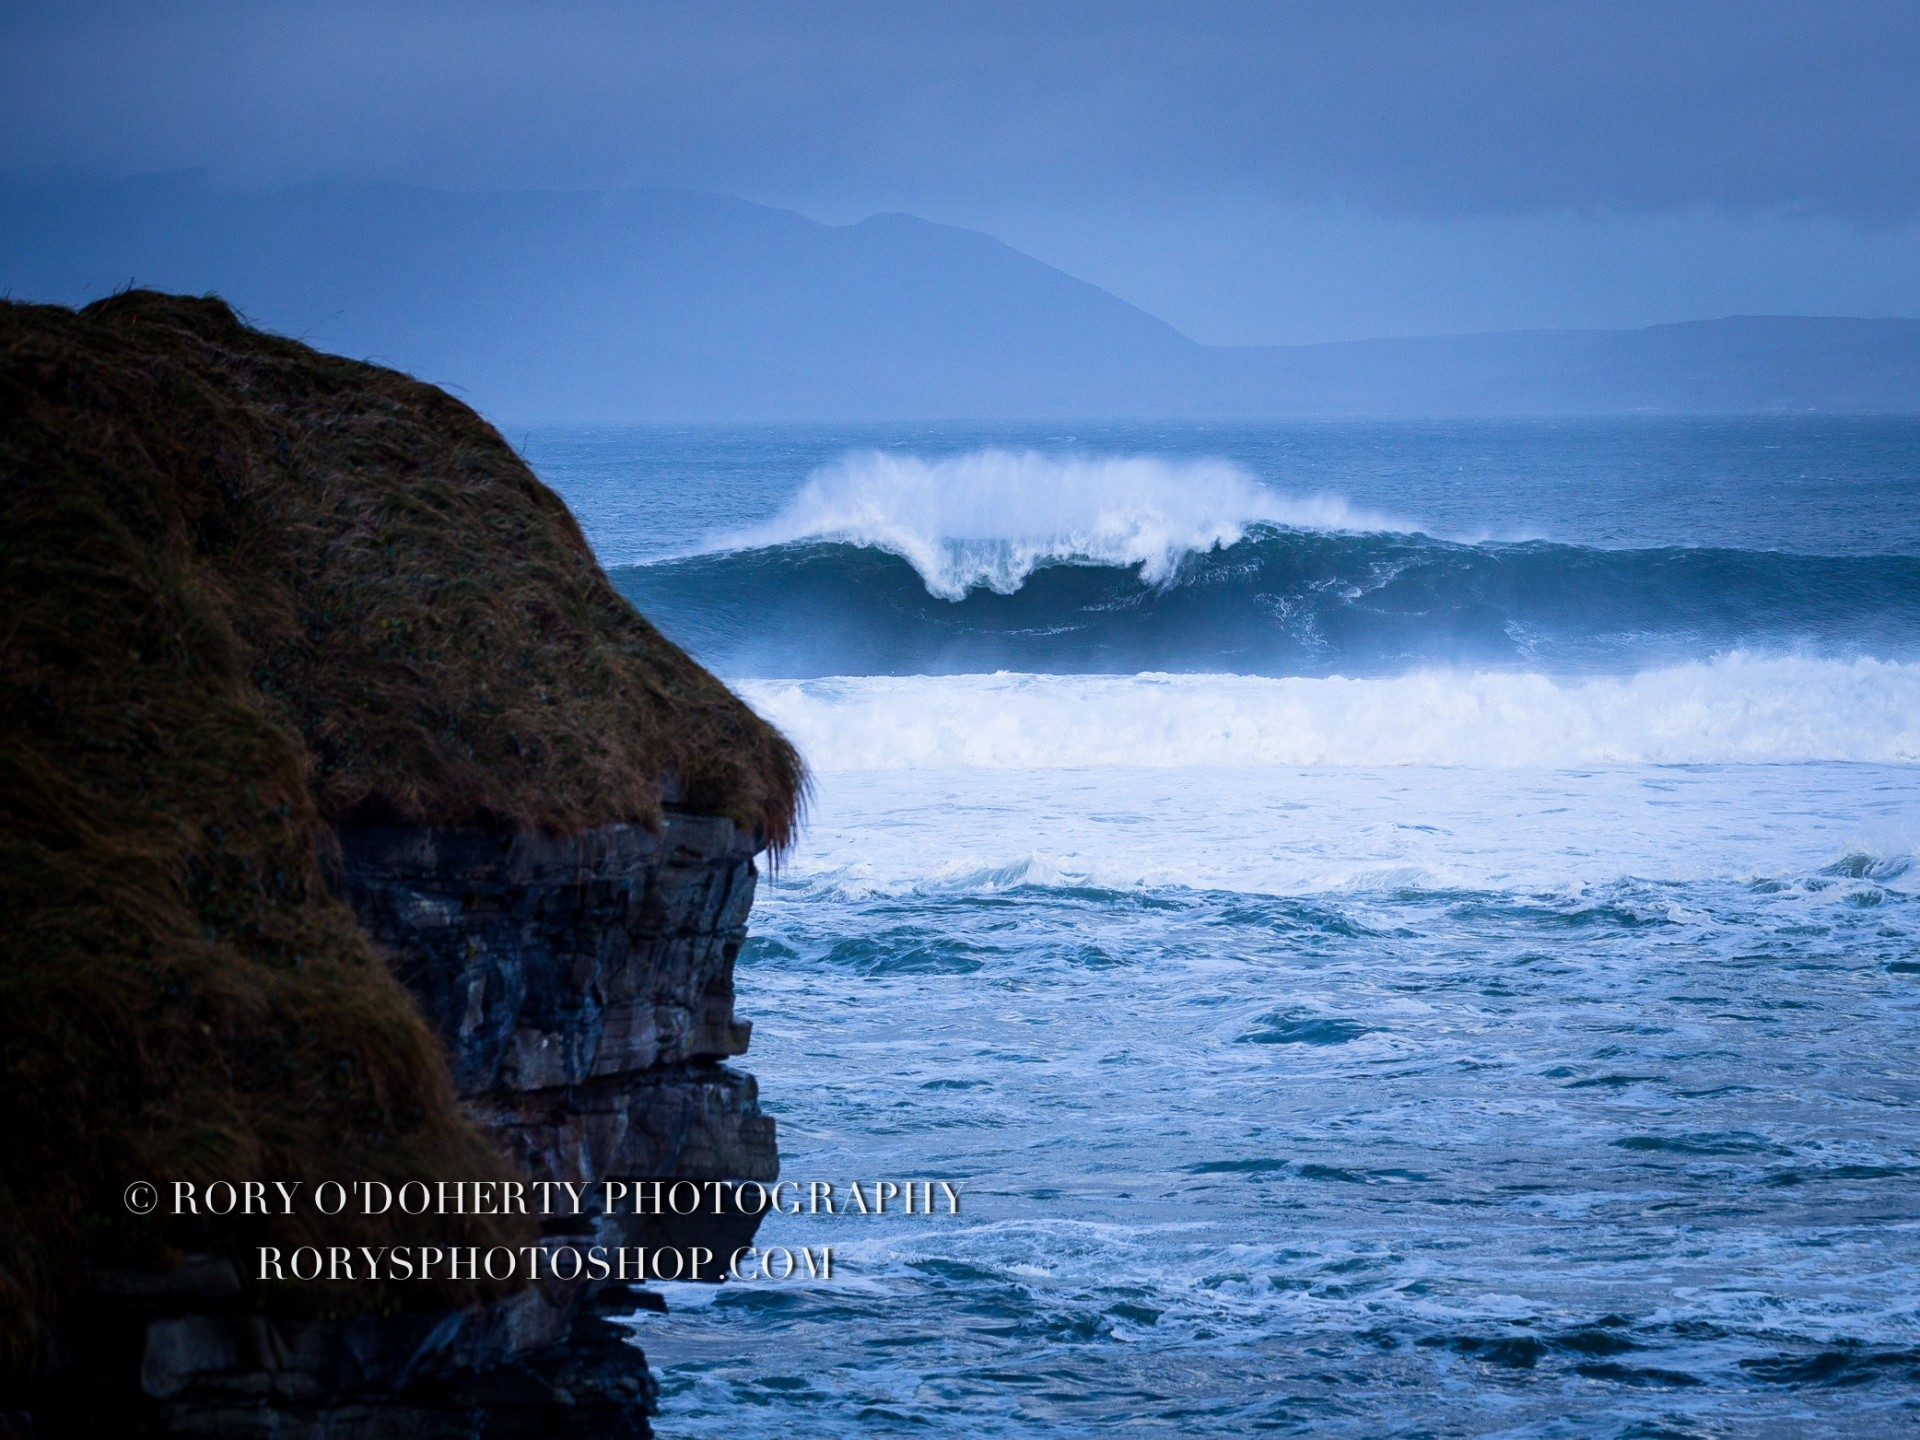 RorysPhotoshop's photo of Mullaghmore Head